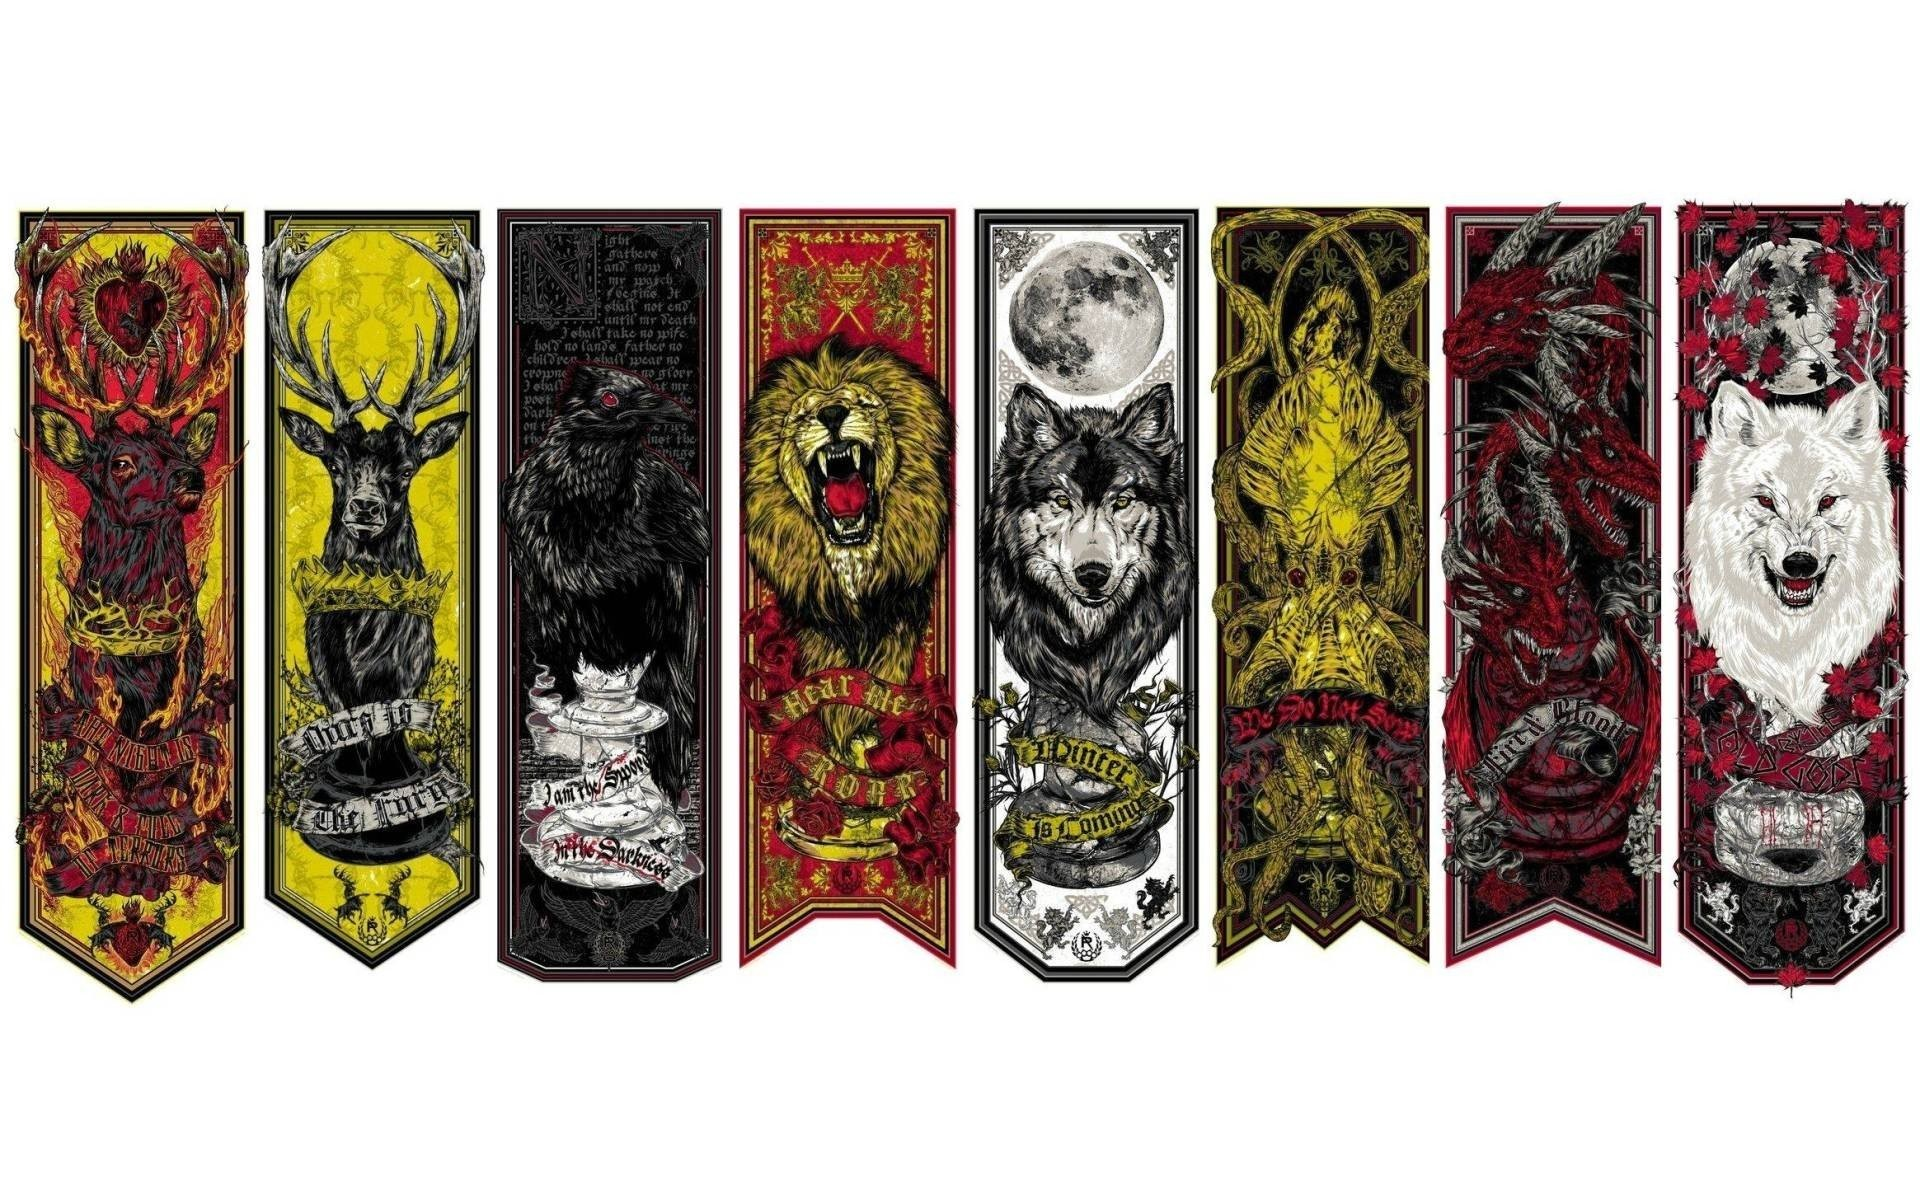 1920x1200 Game of Thrones house crests wallpaper, Game of Thrones house crests TV  Show HD desktop wallpaper